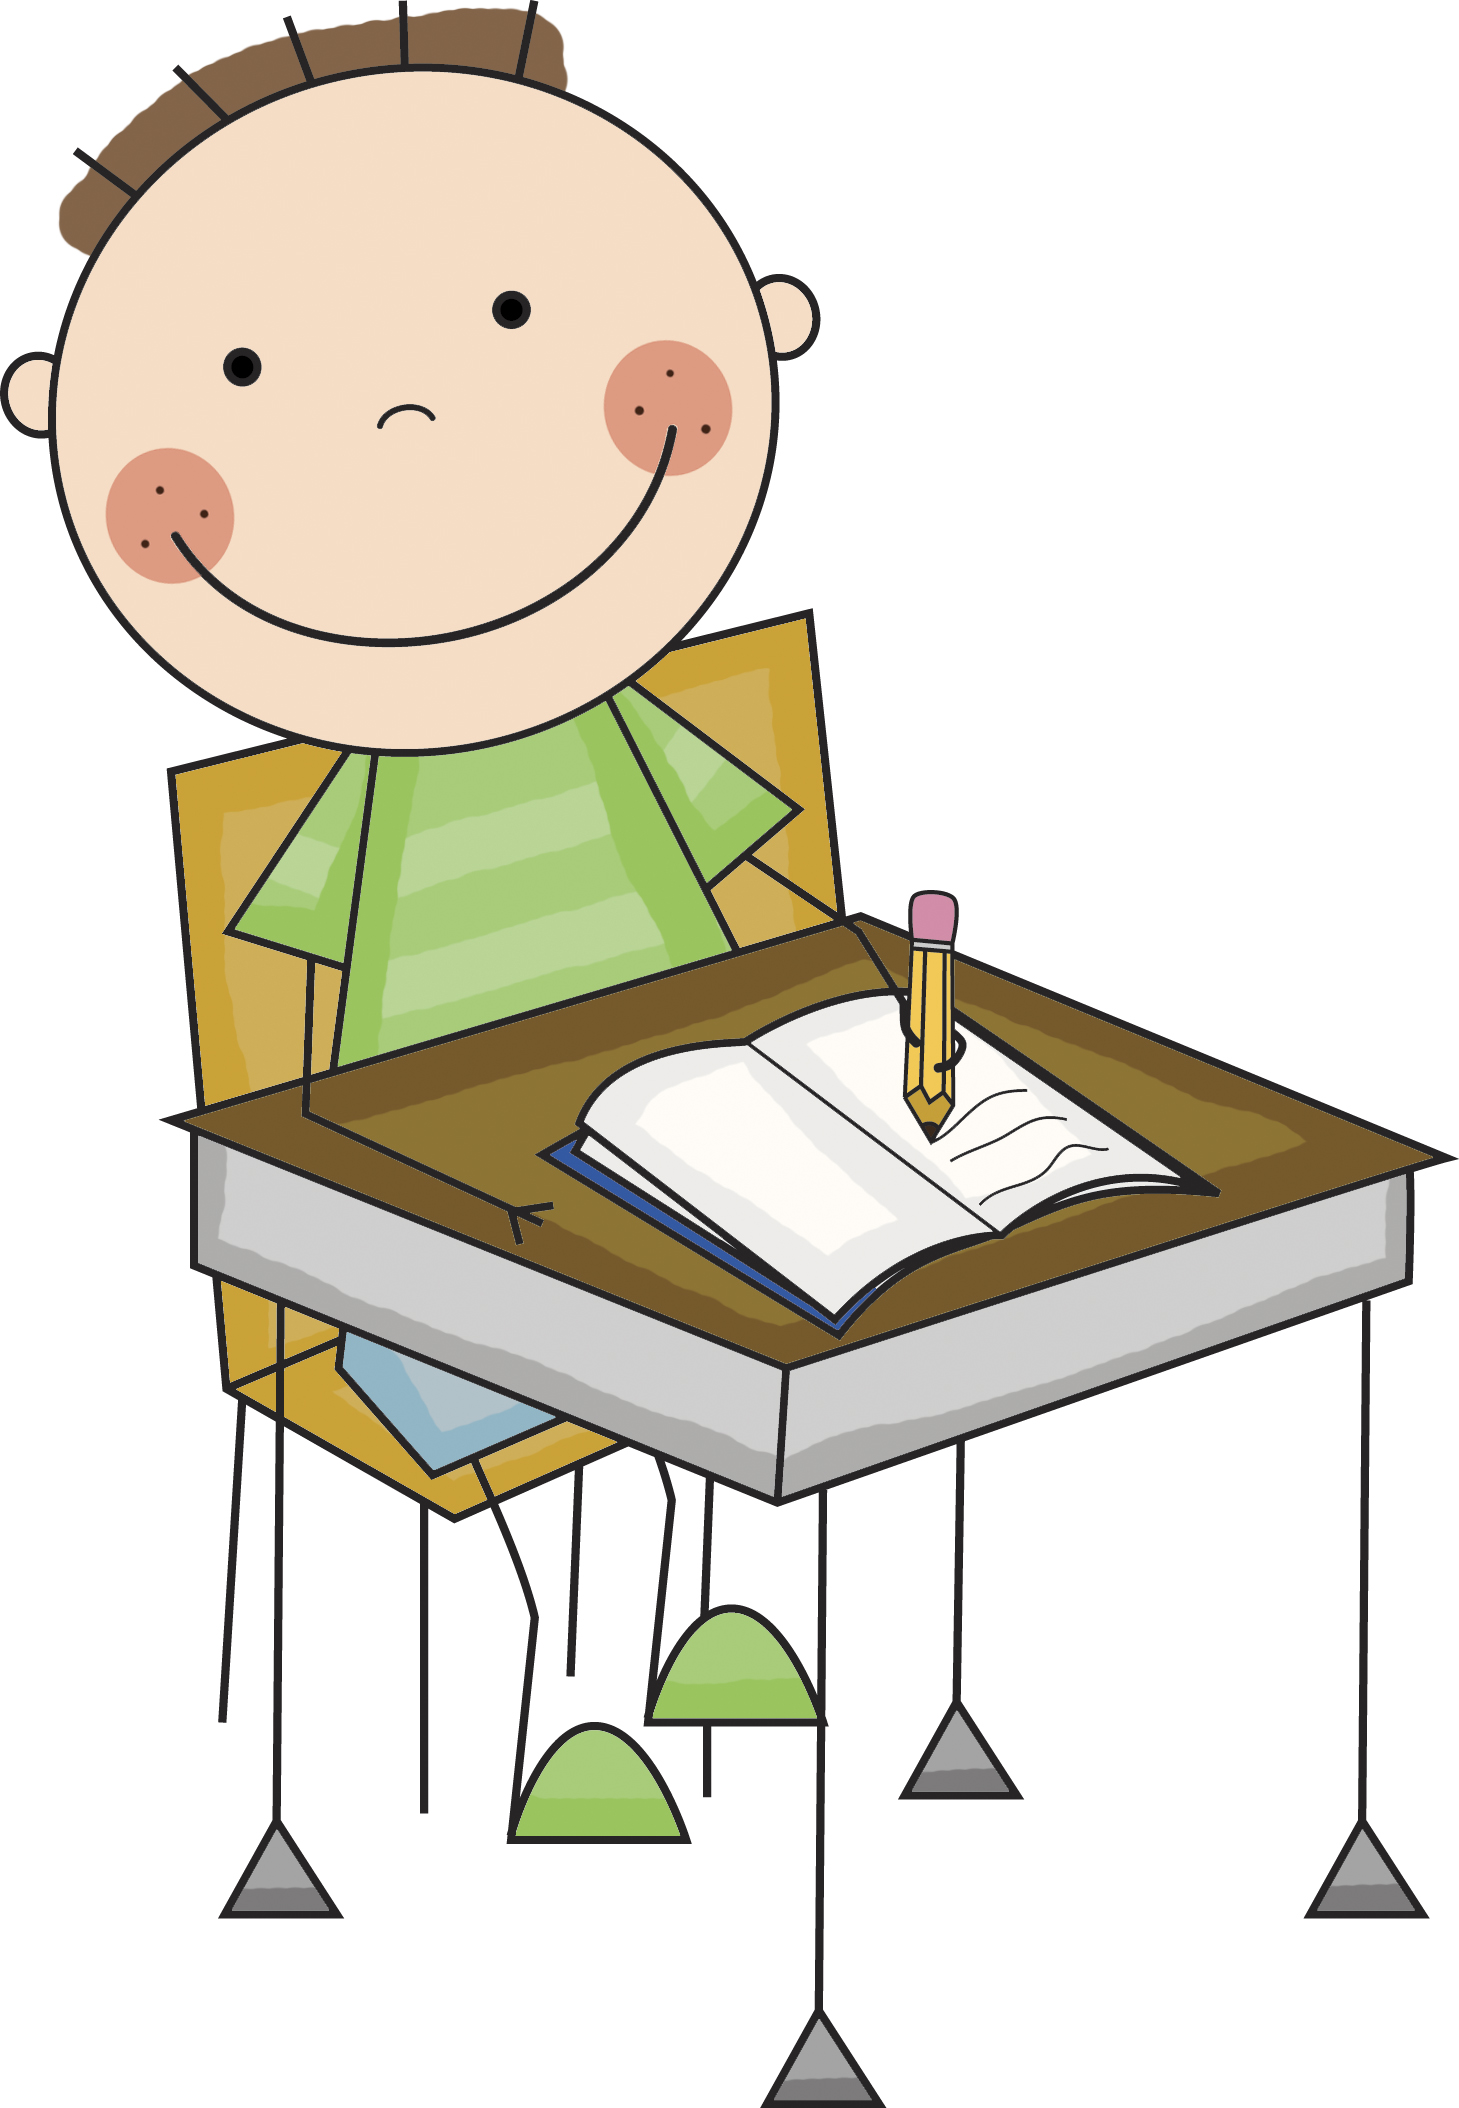 Student washing tables clipart image free stock Work at the tables clipart - ClipartFest image free stock